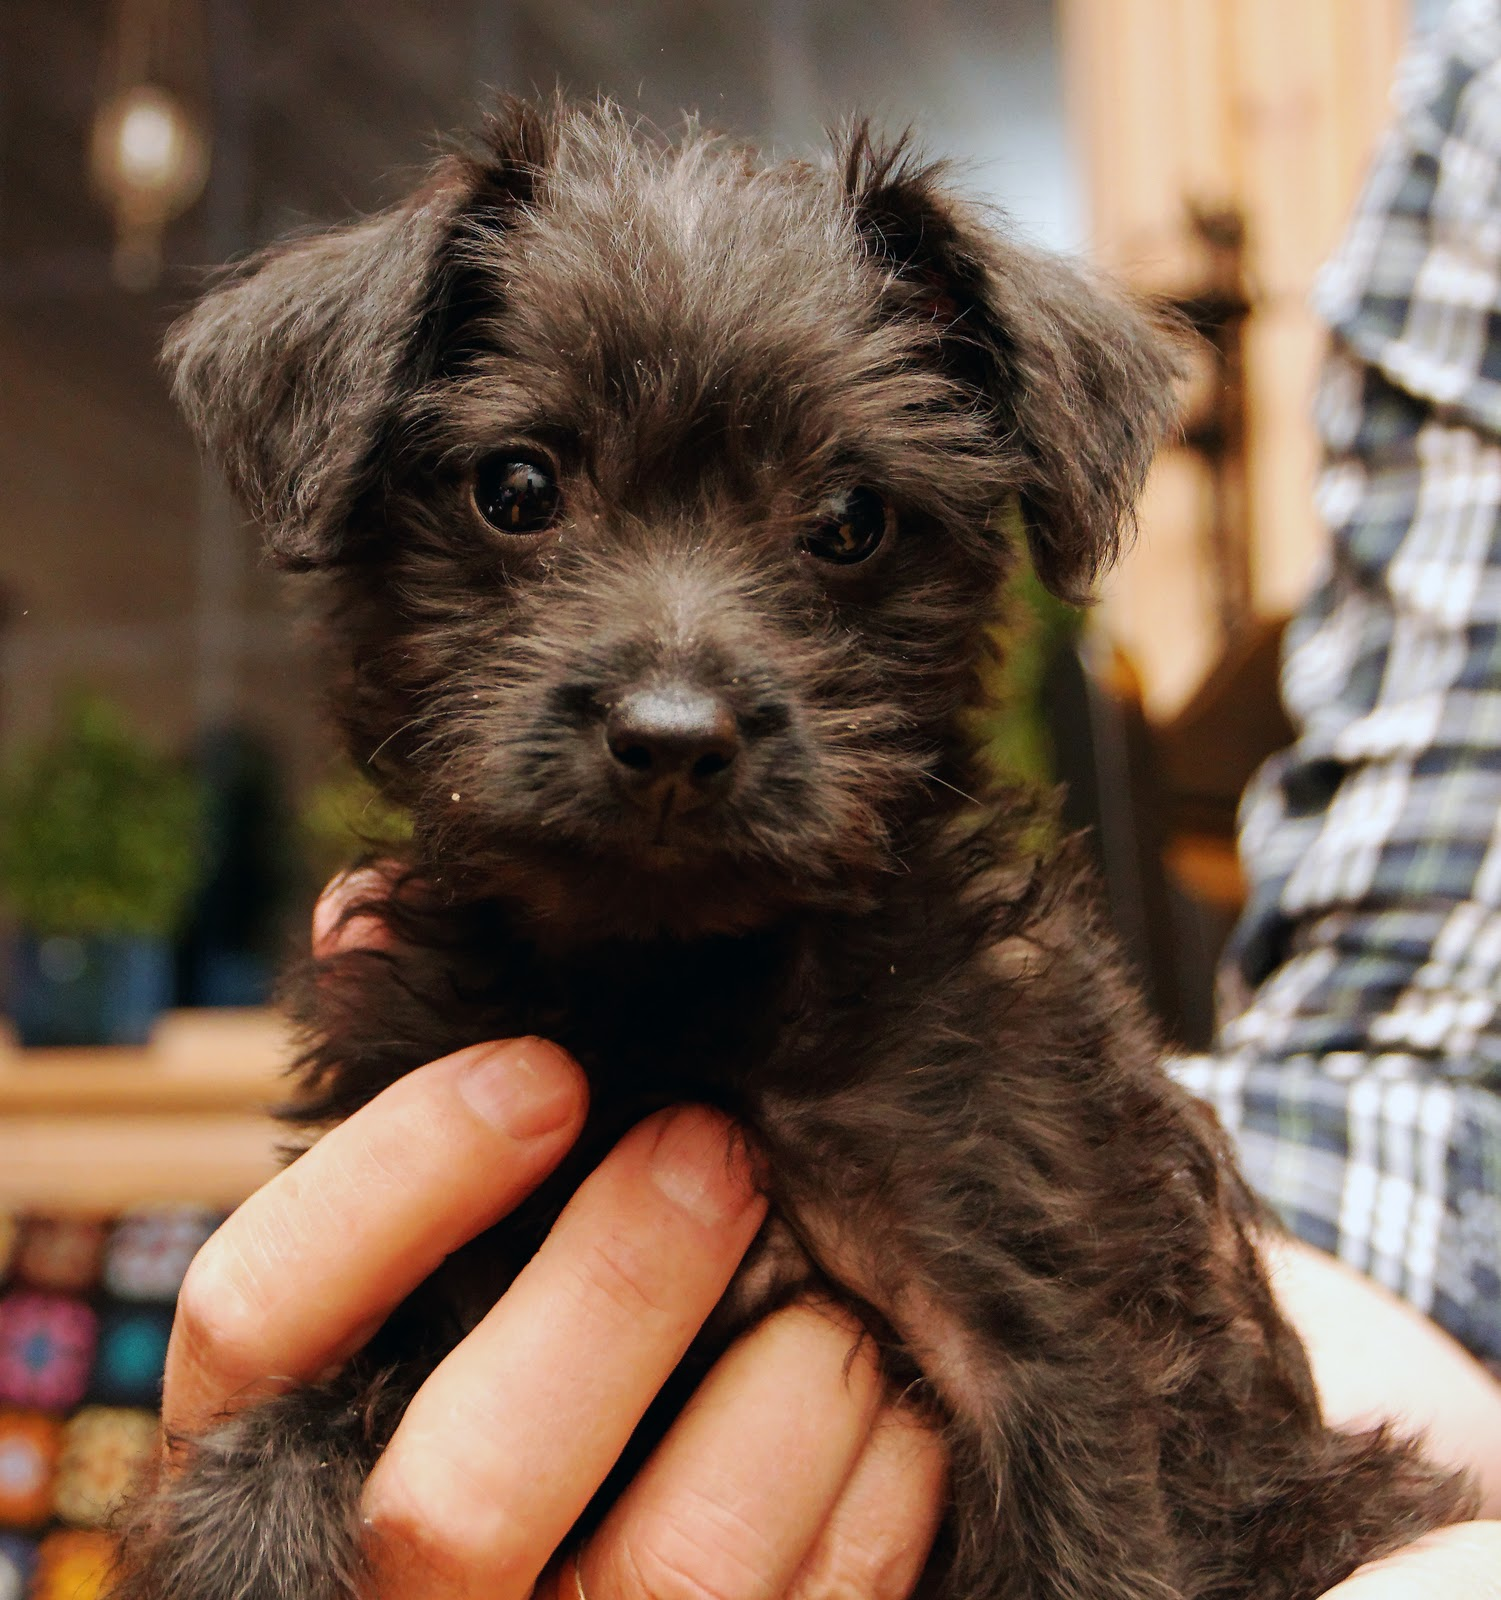 Miniature Pinscher-Miniature Poodle Mix Puppy | LYNVINGEN PHOTOS